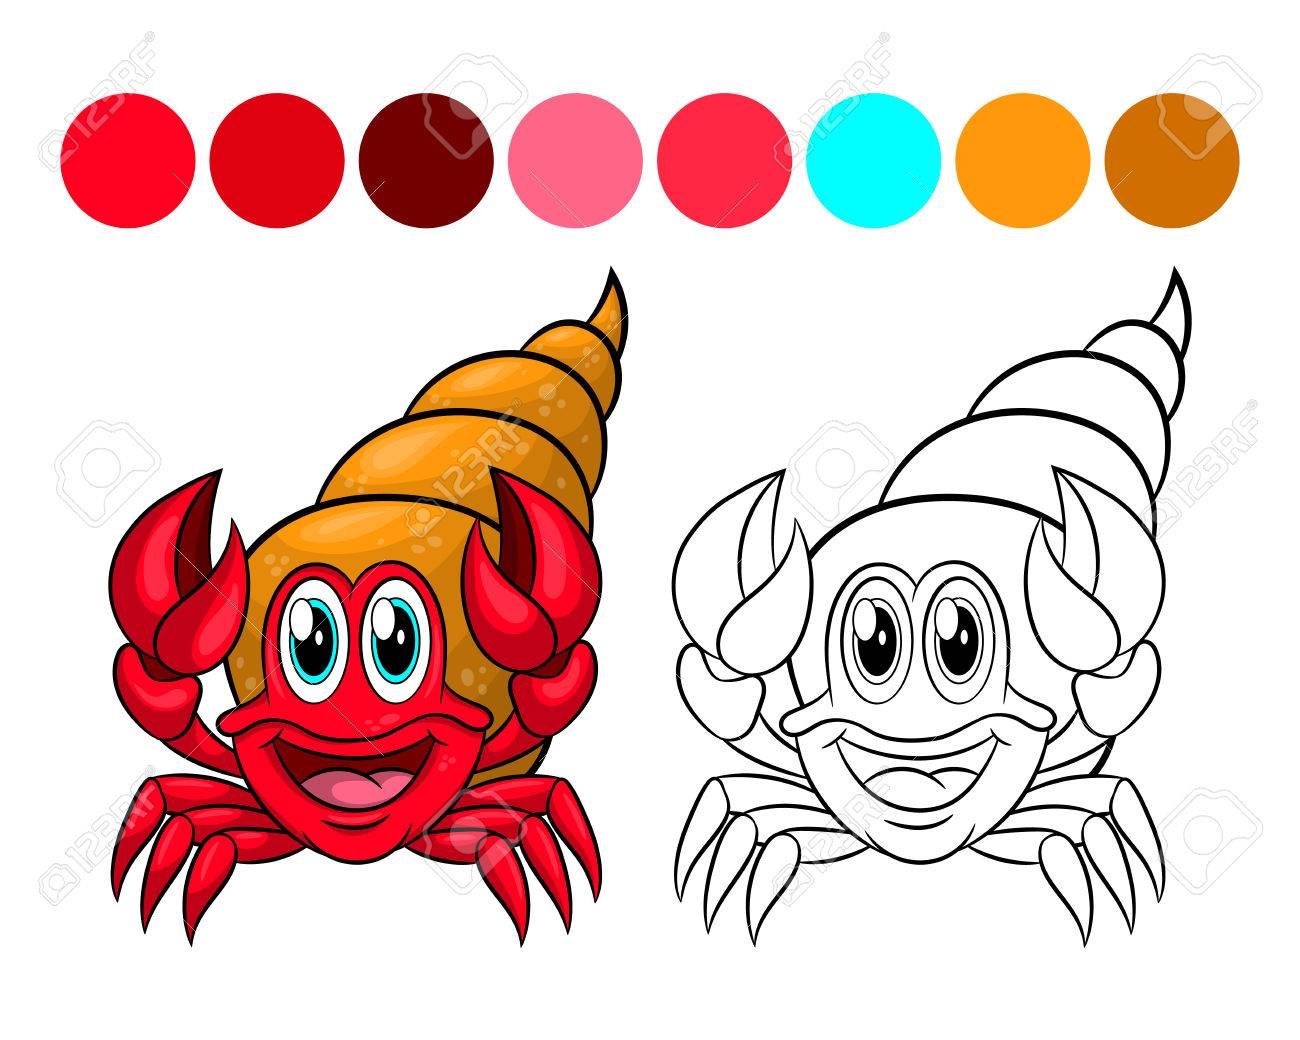 Coloring Book Design For Kids And Children Vector Illustration